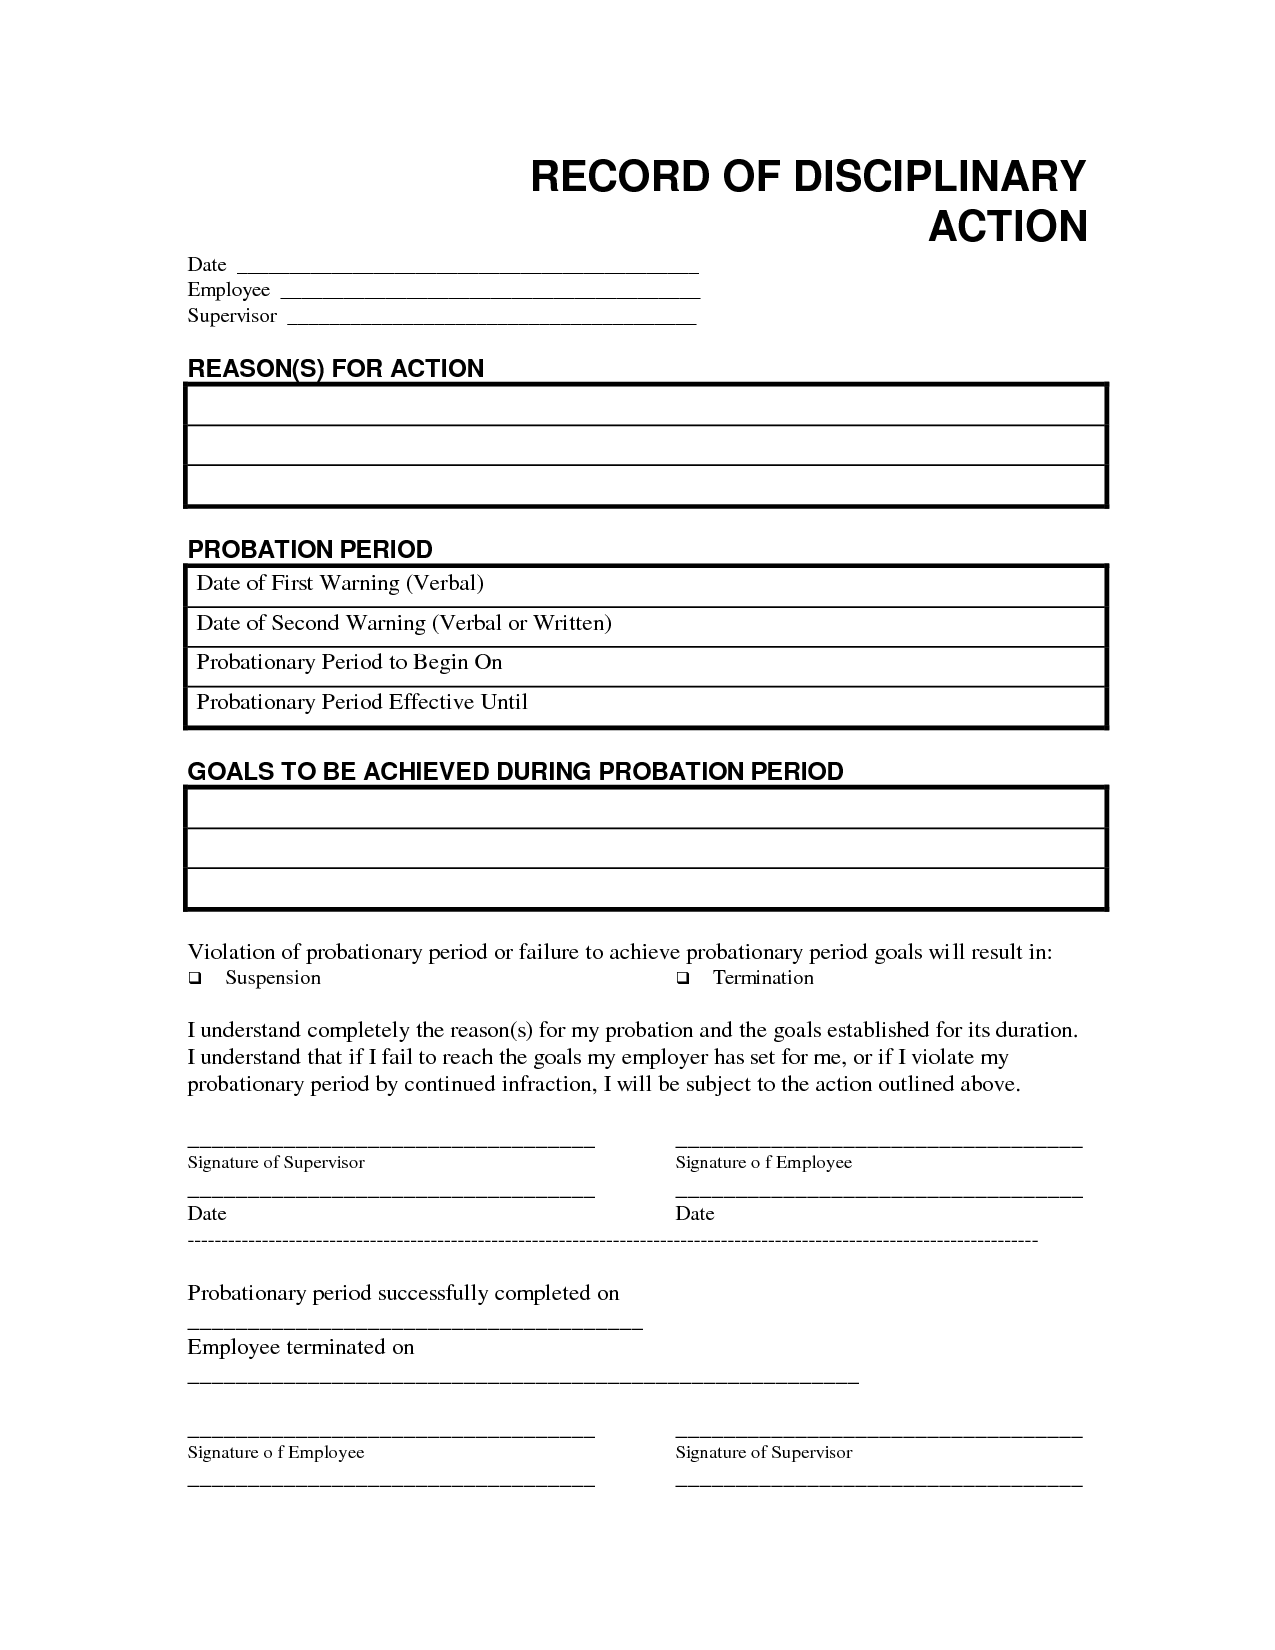 disciplinary form record disciplinary action free office form template by | bar ...